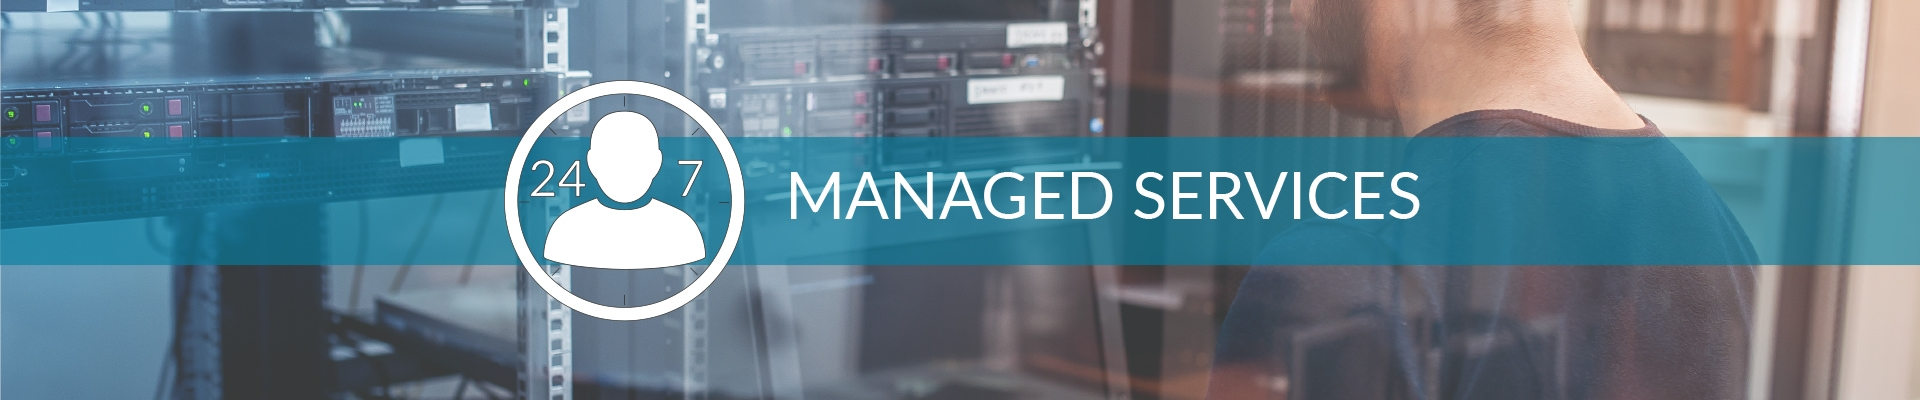 GBS Banner for Managed Services